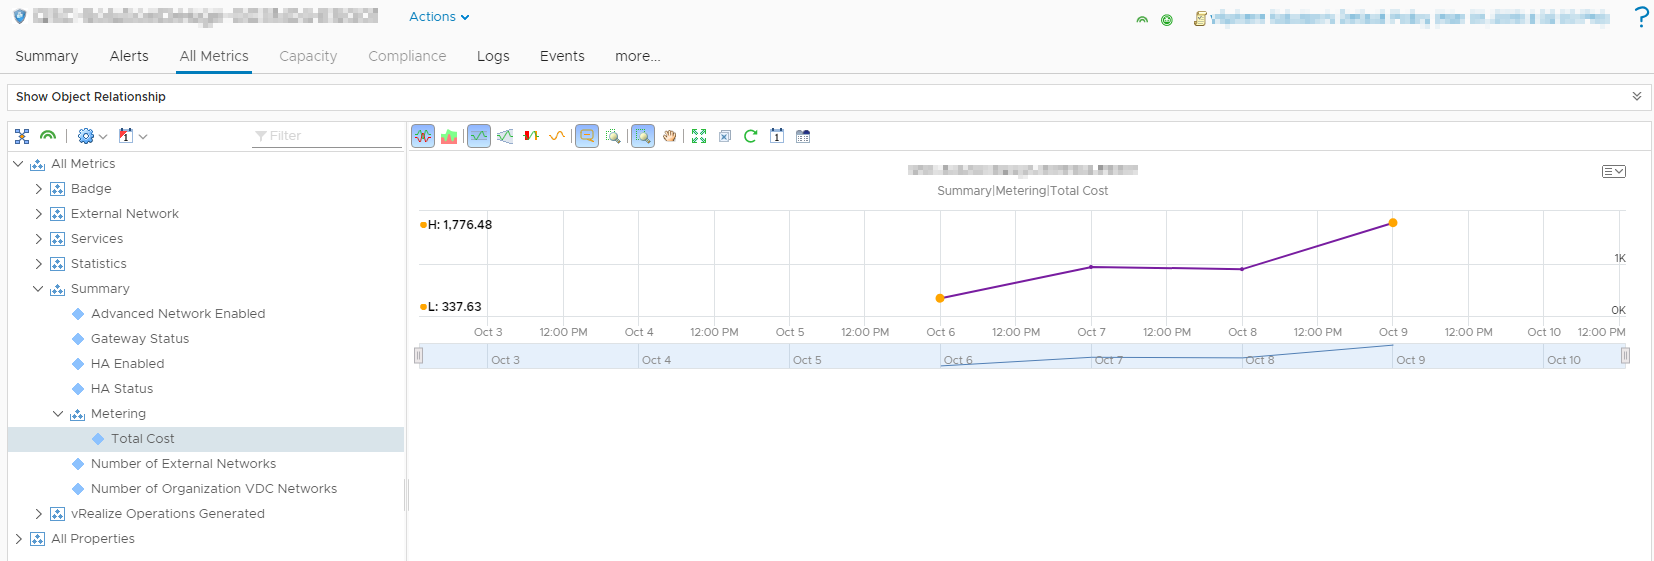 vRealize Operations Tenant App 2.0 for vCloud Director - vRops Edge Gateway Metering Metrics